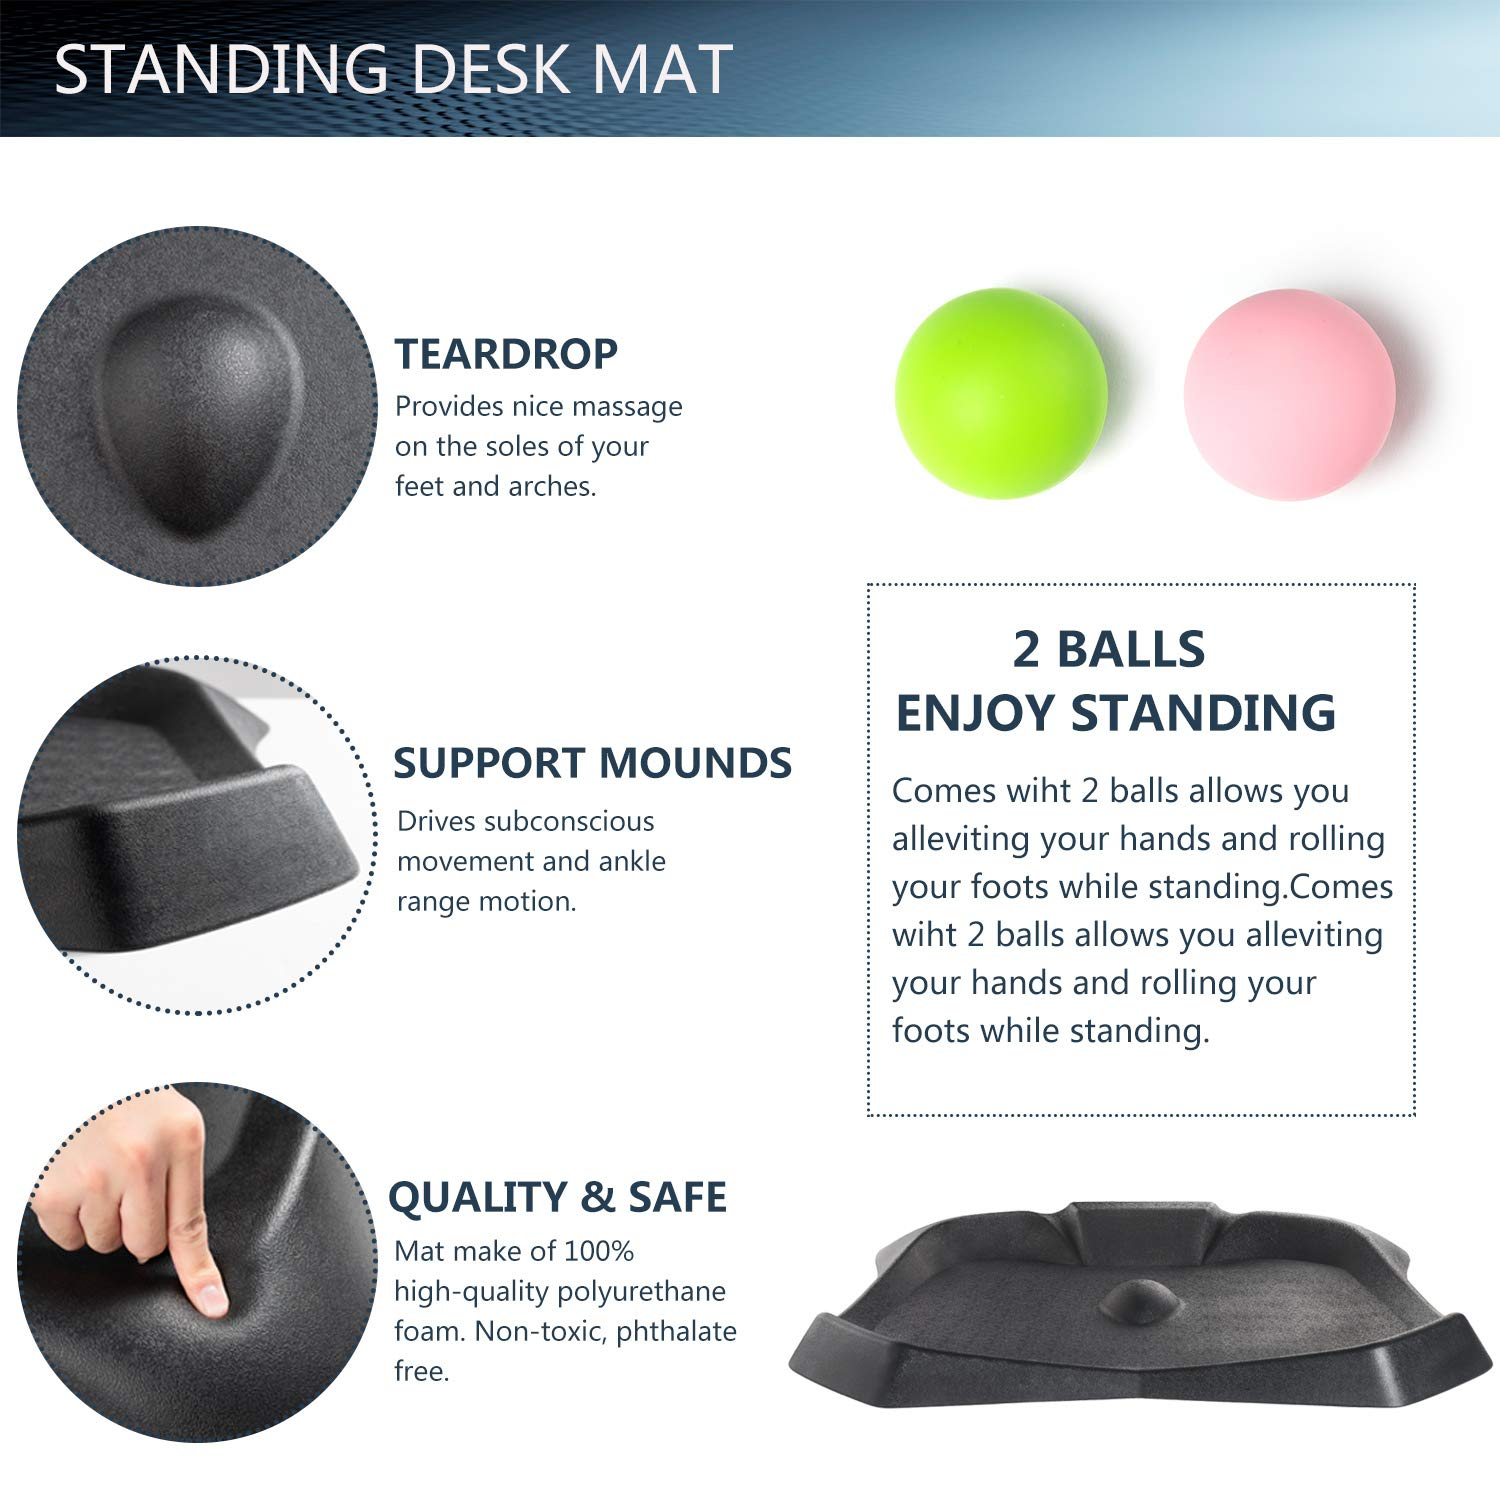 EleTab Anti-Fatigue Standing Desk Mat - Original Premium Extra Thick Ergonomic Comfort Floor Mats with Varied Terrain Acupressure Massage Perfect for Home, Work, Office, Stand Up Desk by EleTab (Image #5)